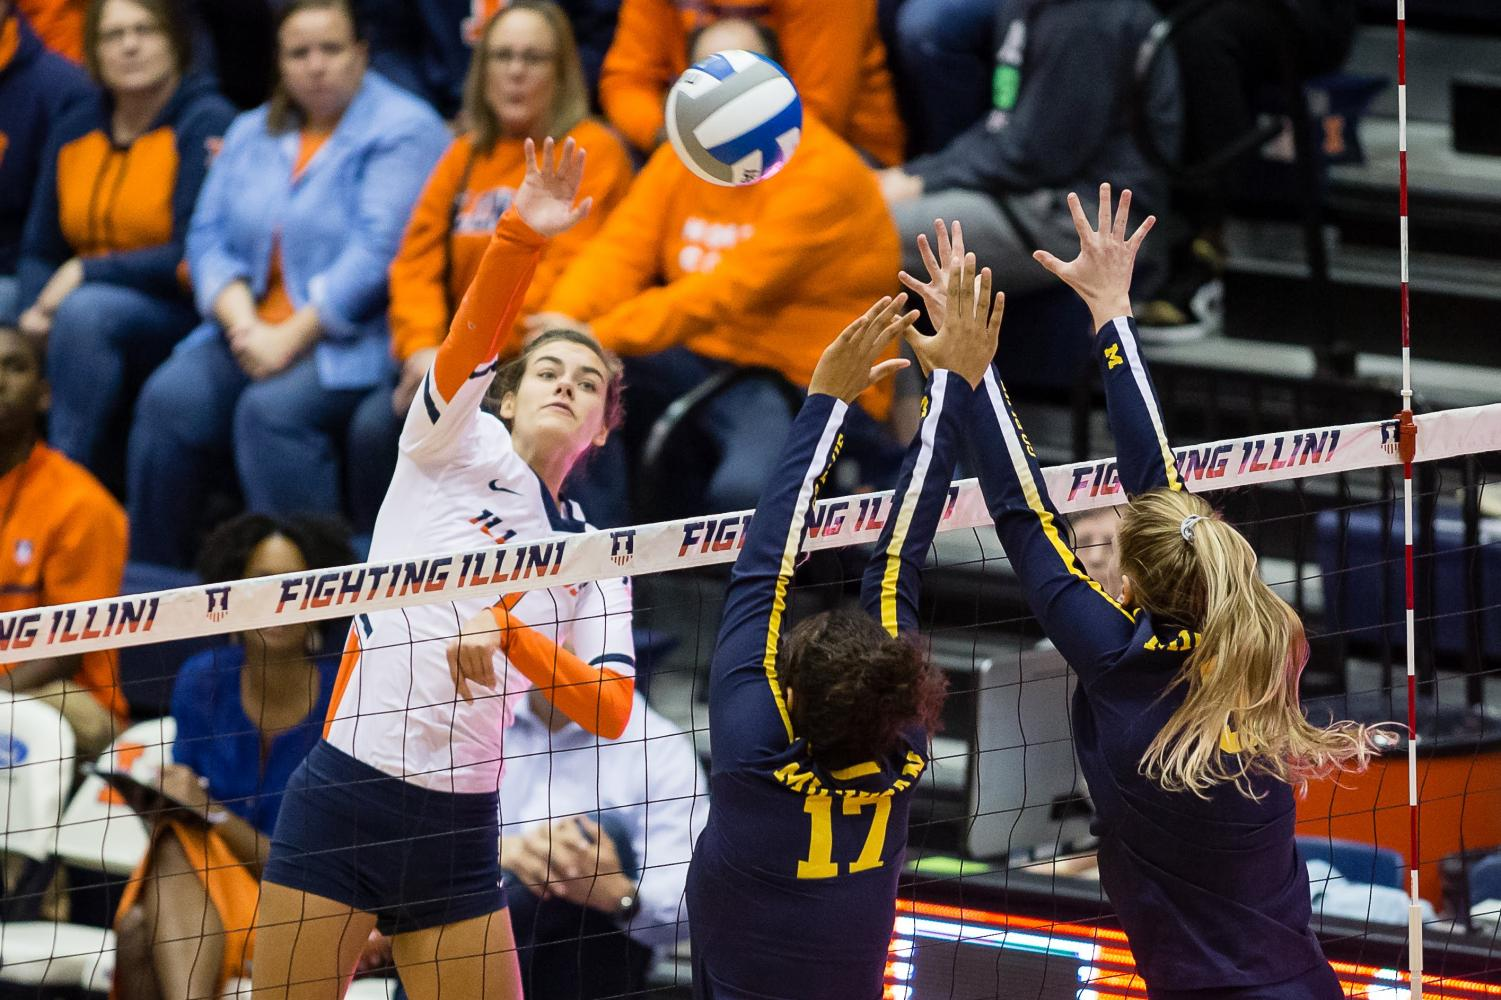 Illinois outside hitter Jacqueline Quade spikes the ball during the match against Michigan at Huff Hall on Oct. 19. The Illini won 3-2.